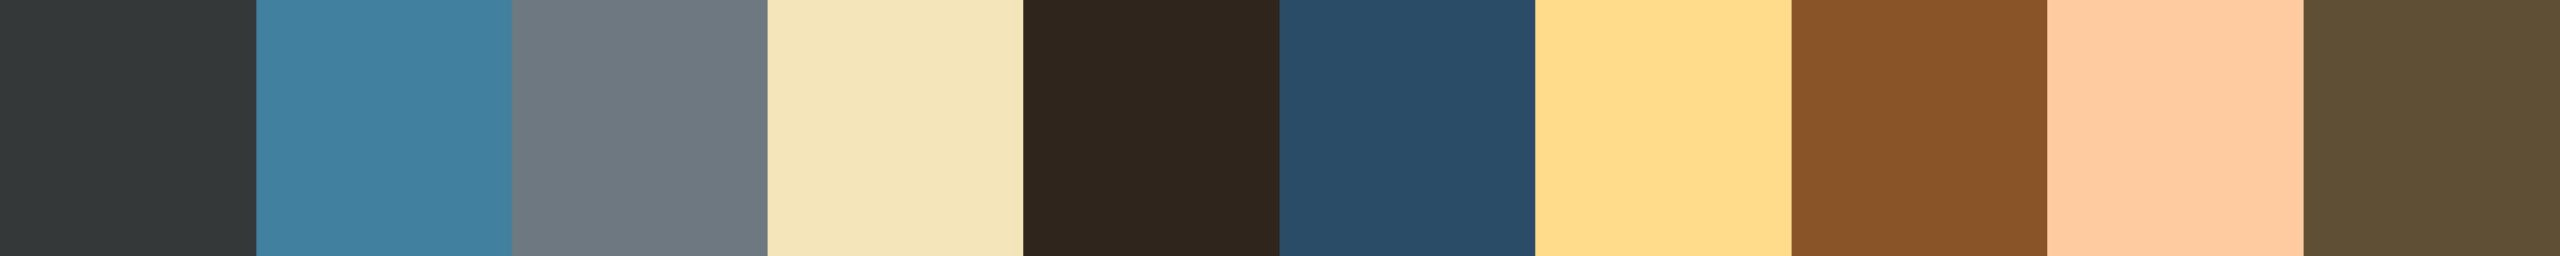 578 Phaonis Color Palette